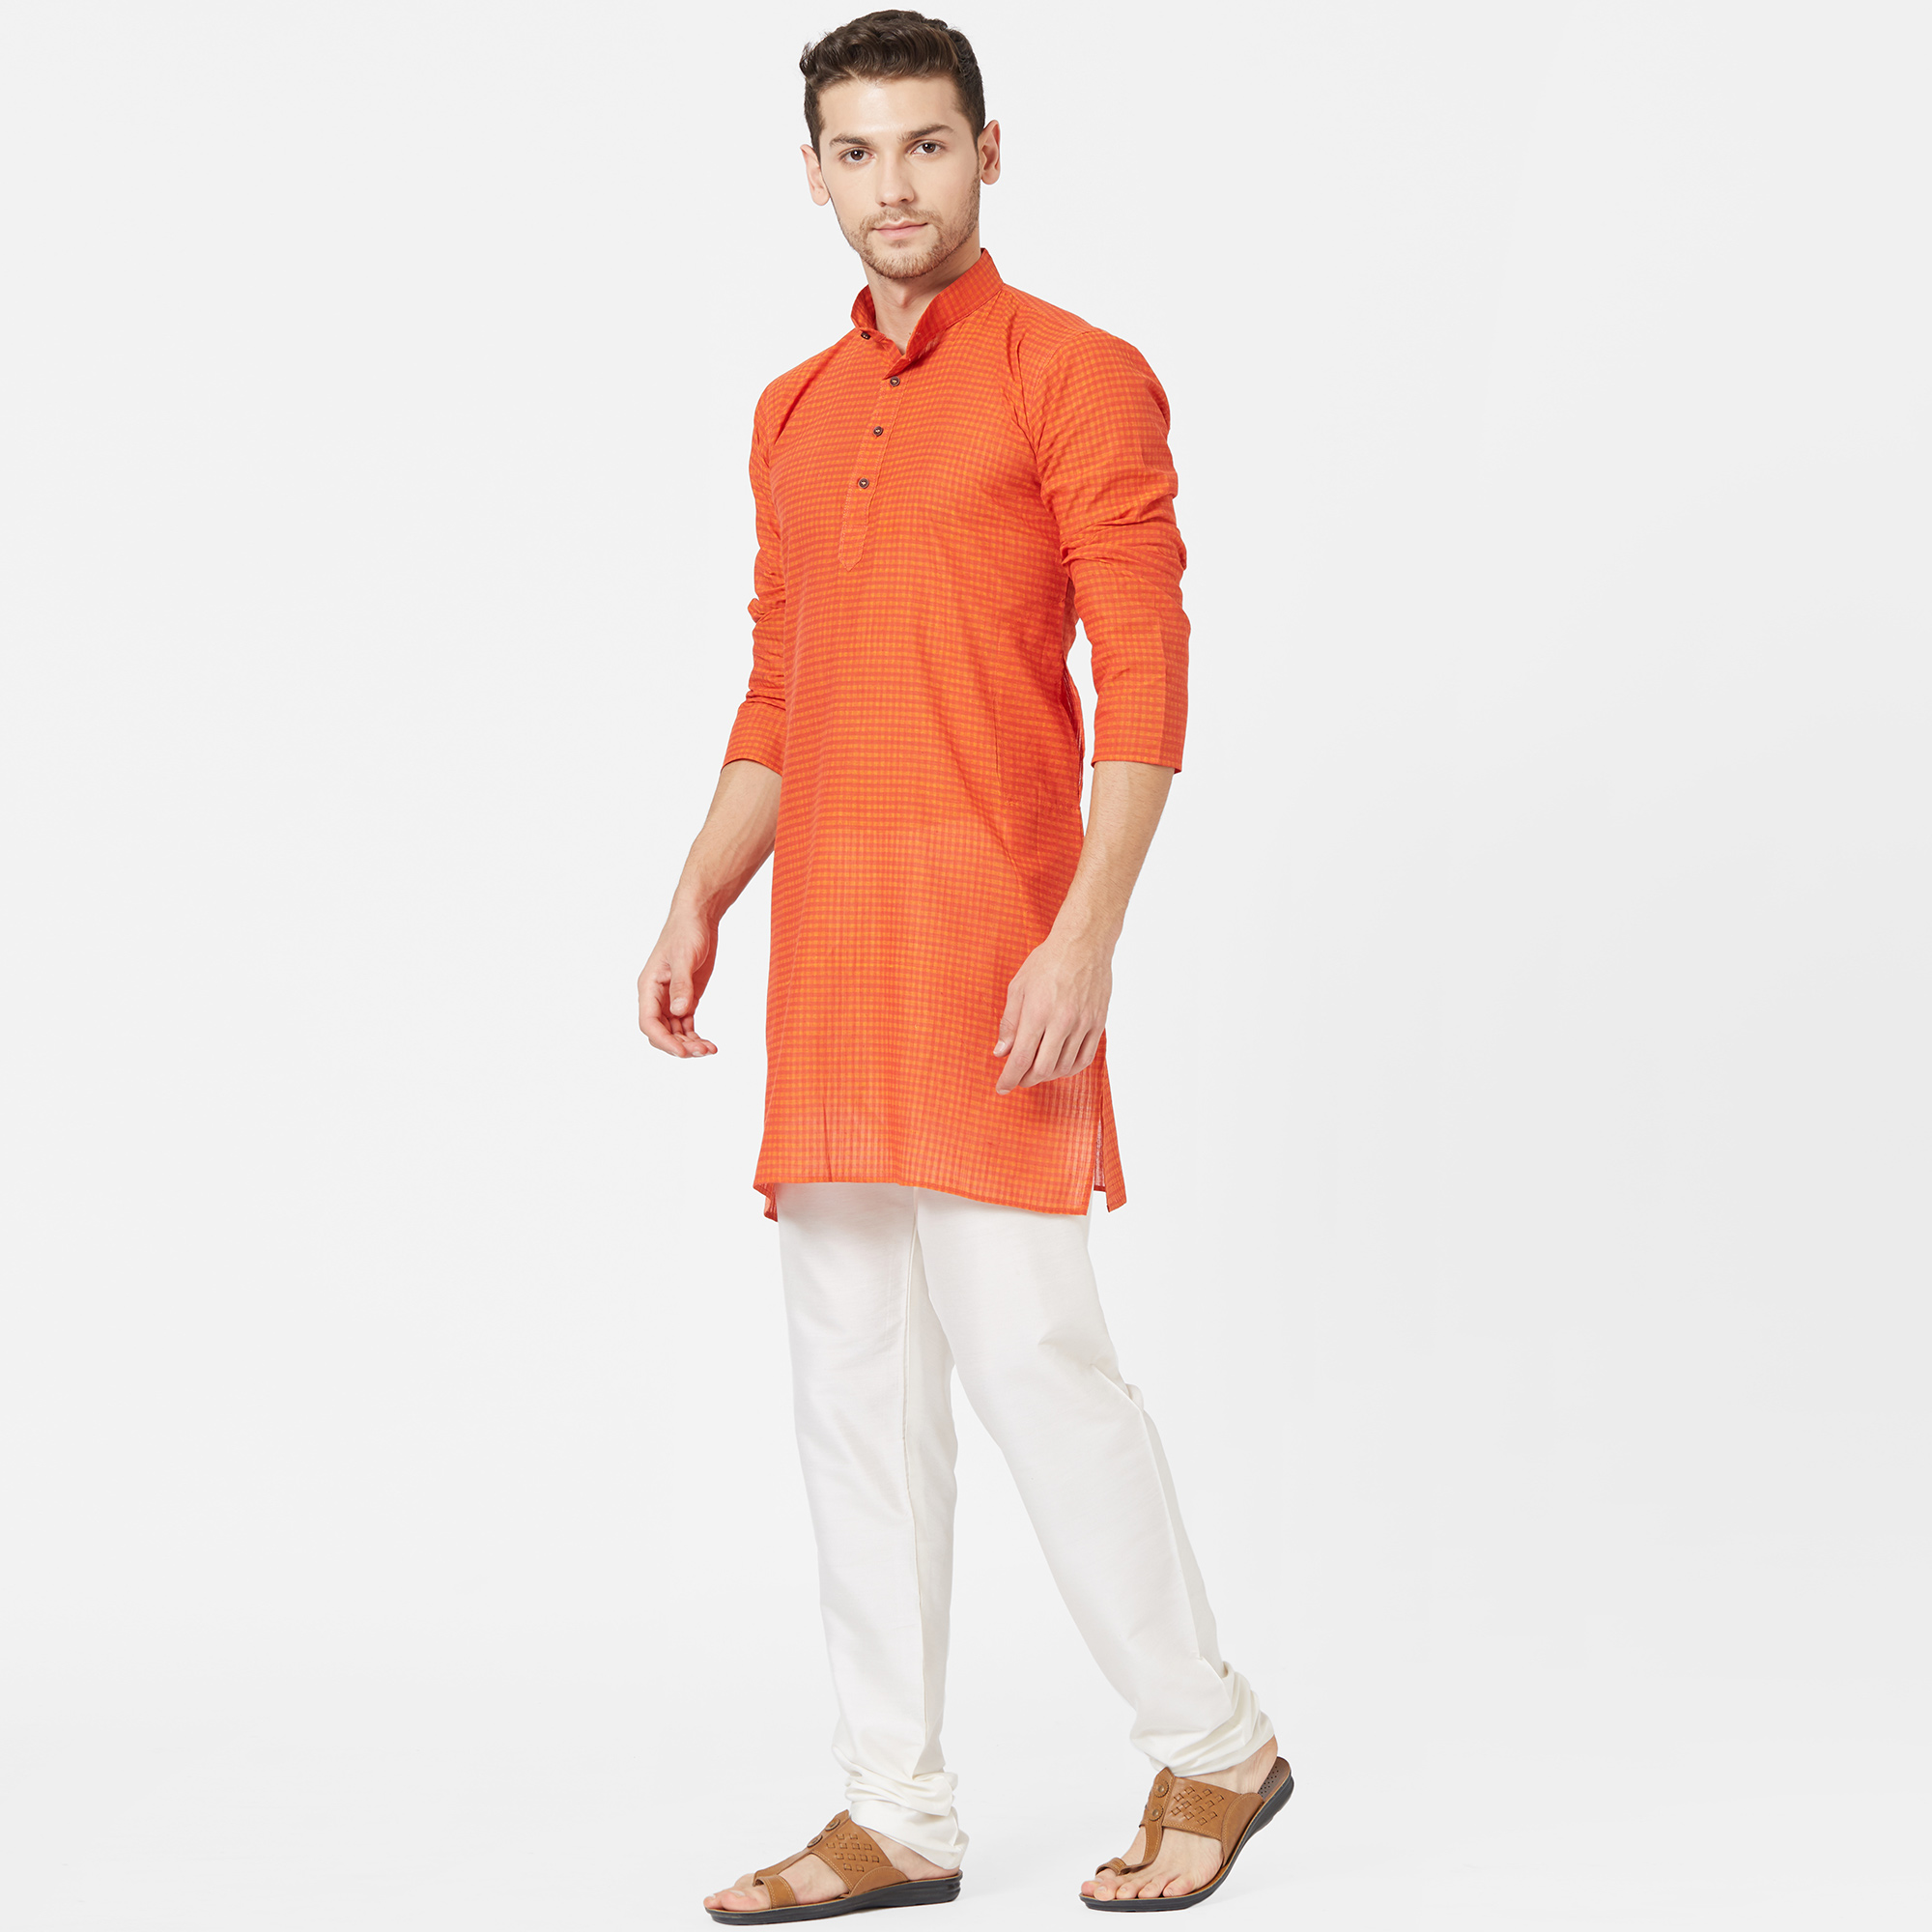 Ideal Orange Colored Festive Wear Cotton Kurta